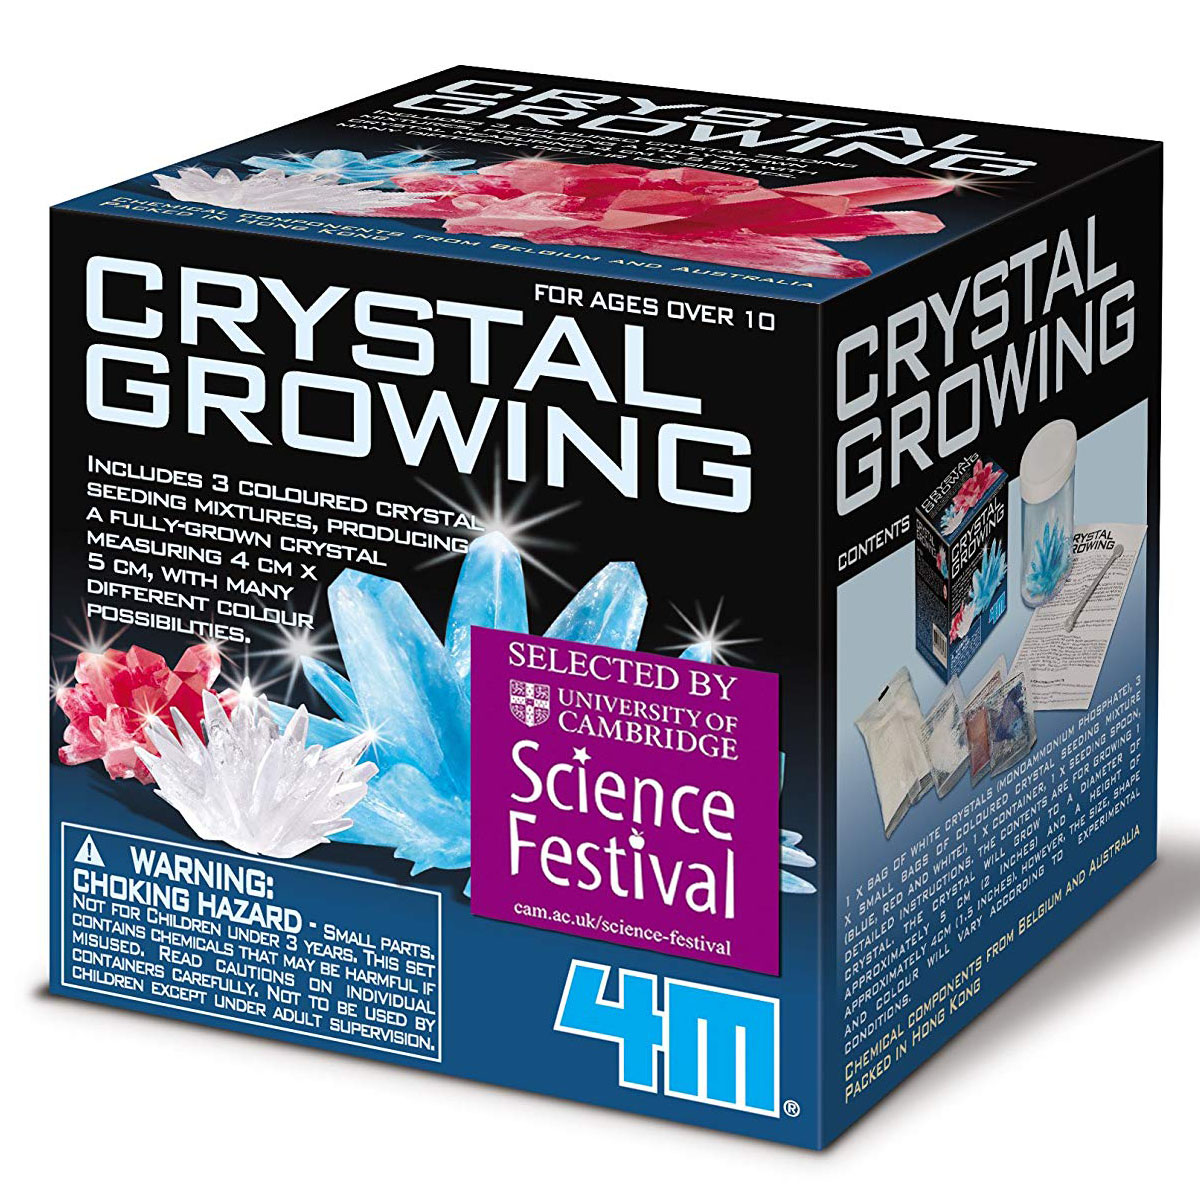 Home Sauna Kits Since 1974 crystal growing kit assorted | toys | casey's toys